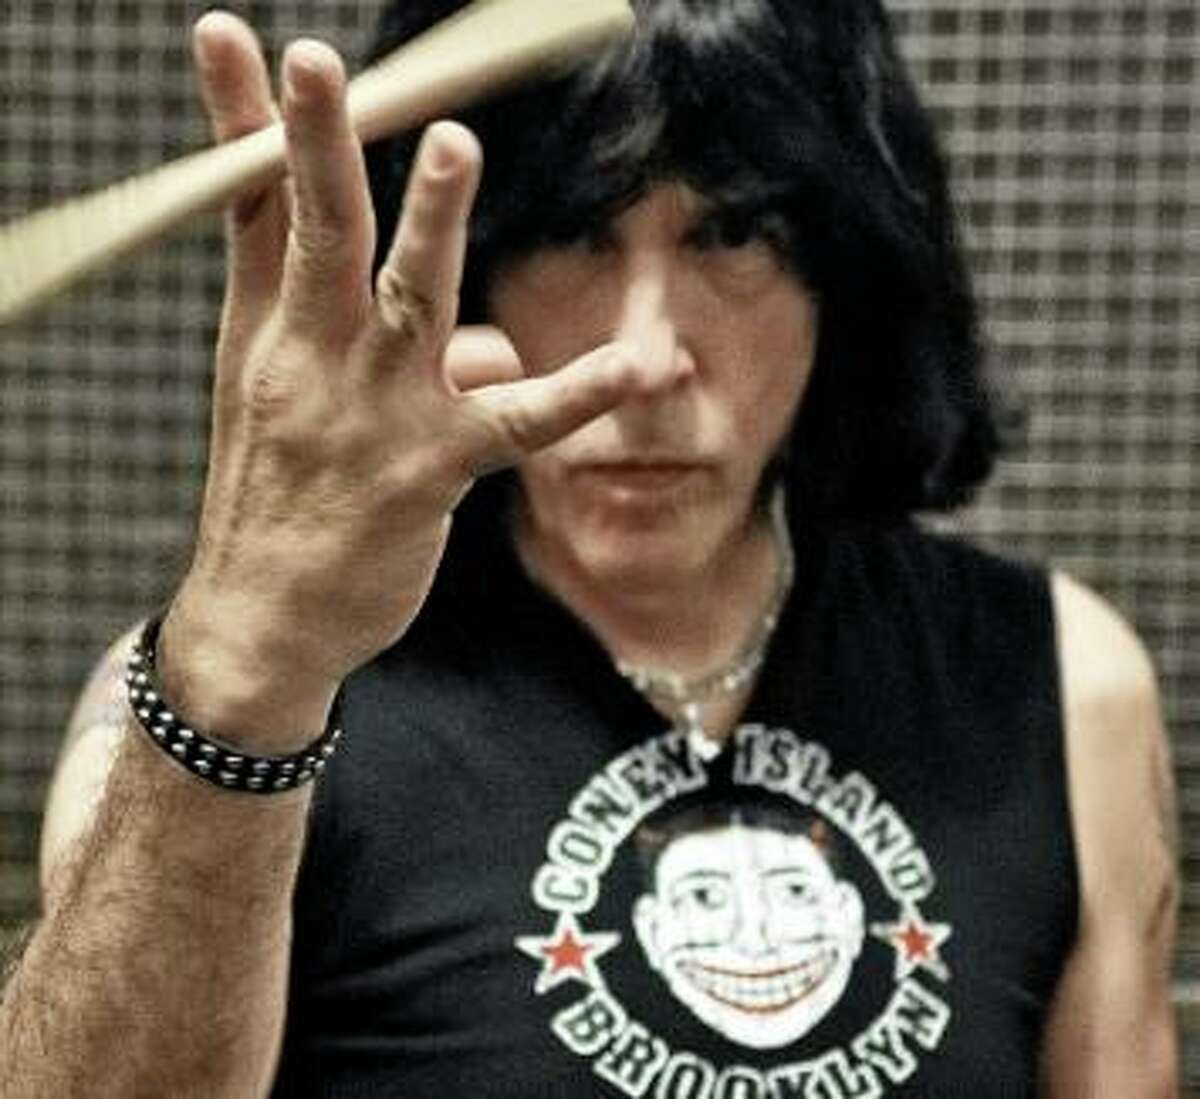 Marky Ramone, who spent 15 years drumming with the Ramones, is bringing his Blitzkrieg show to The Warehouse at Fairfield Theatre Company Dec. 21.